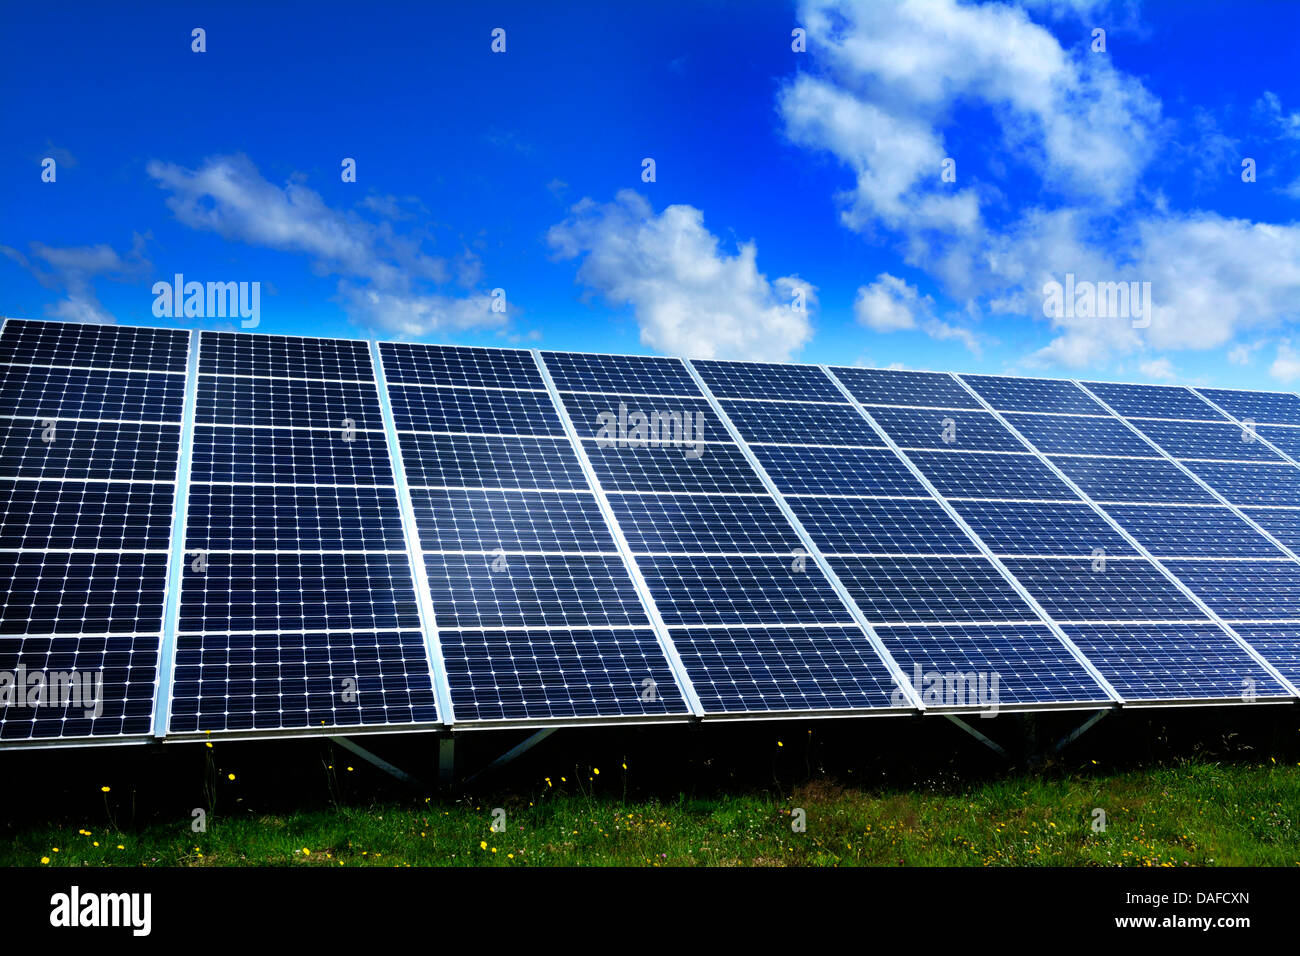 Solar farm with large solar panels in an array, France, Europe - Stock Image